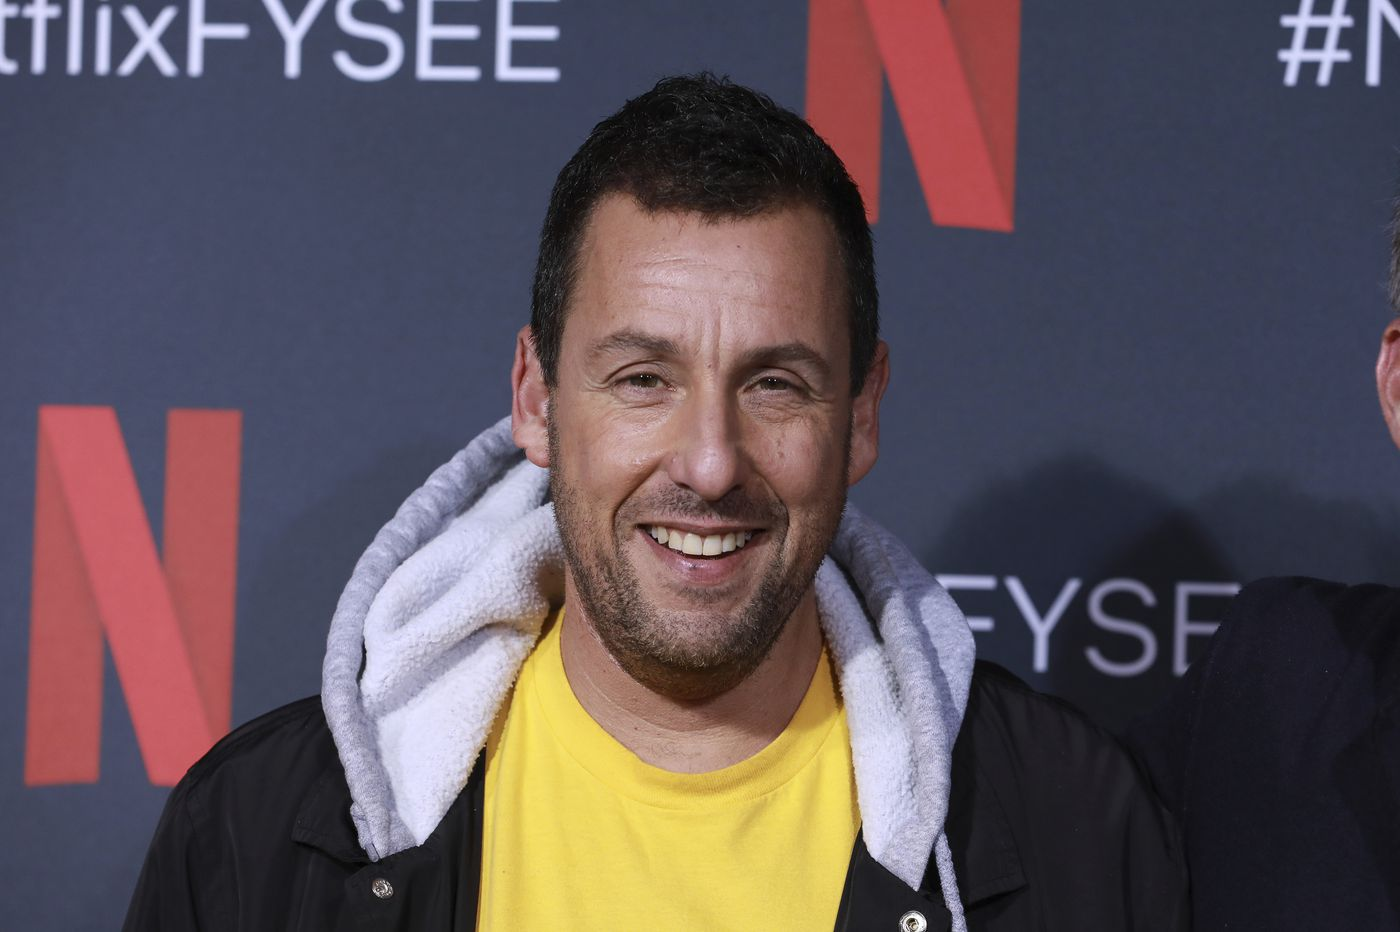 Adam Sandler, Lebron James' new Netflix movie 'Hustle' plans to film in Philly in the fall